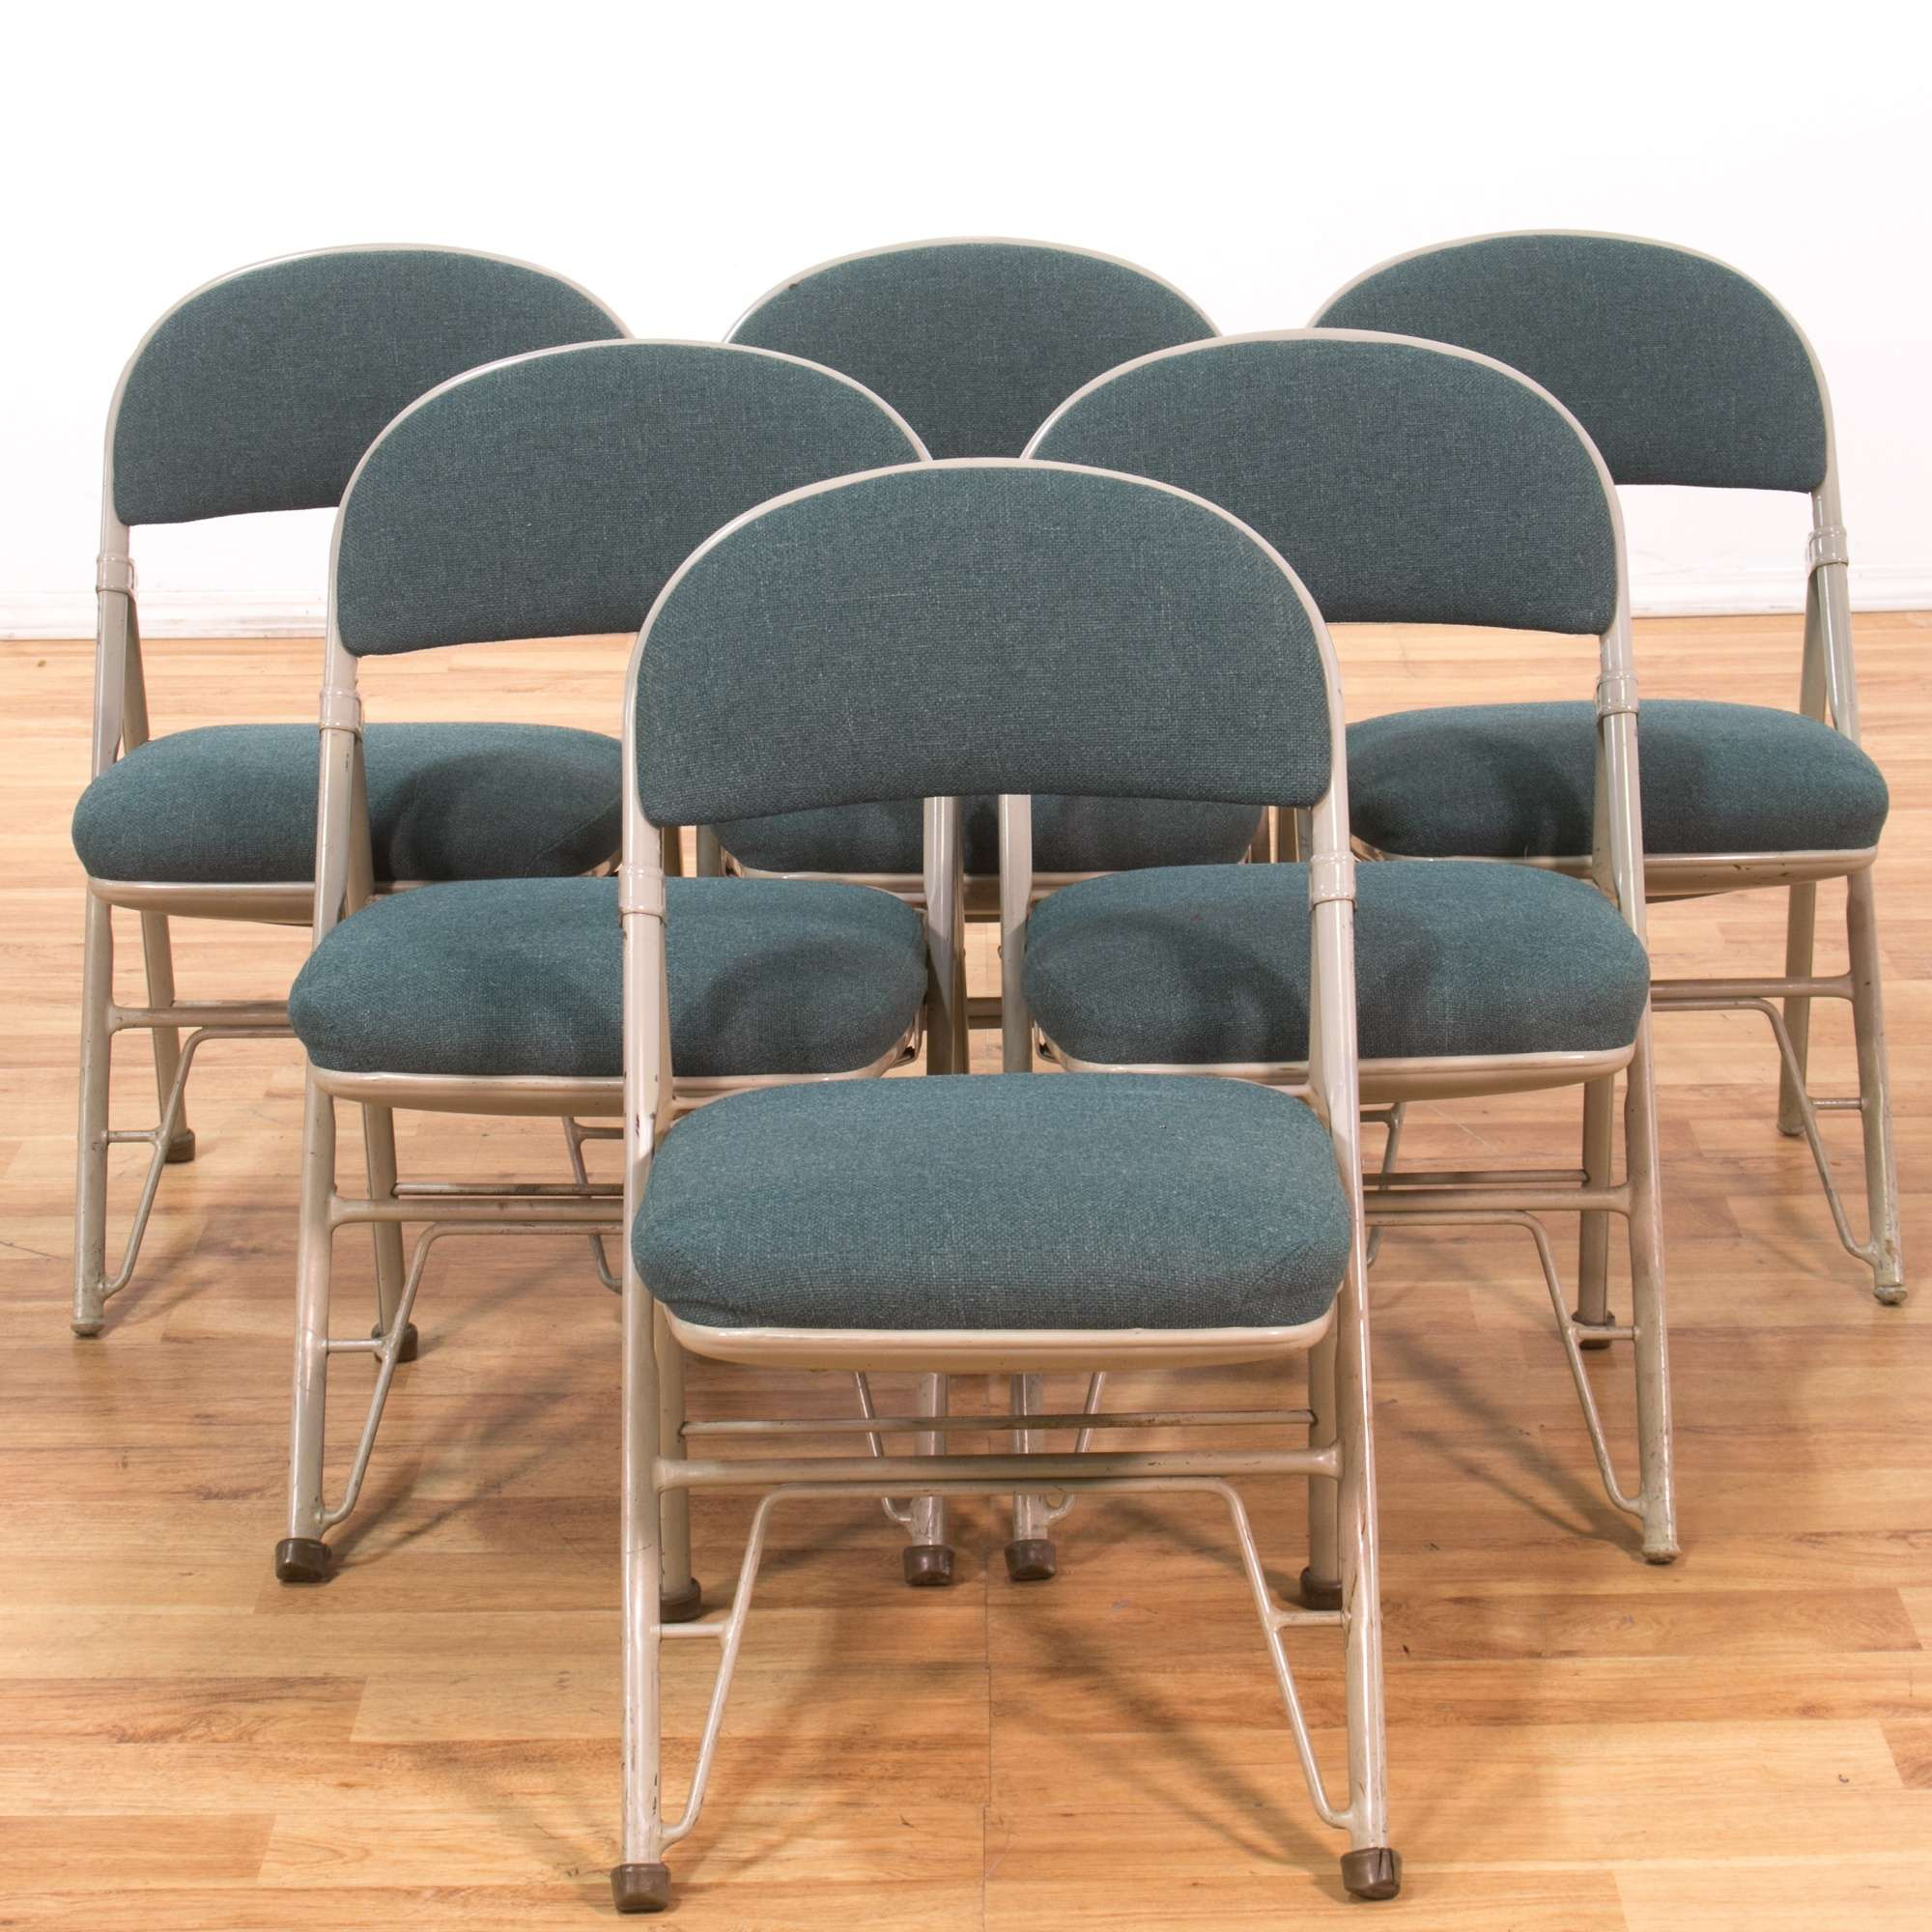 Brilliant Set Of 6 Mid Century Modern Industrial Folding Chairs 3 Caraccident5 Cool Chair Designs And Ideas Caraccident5Info